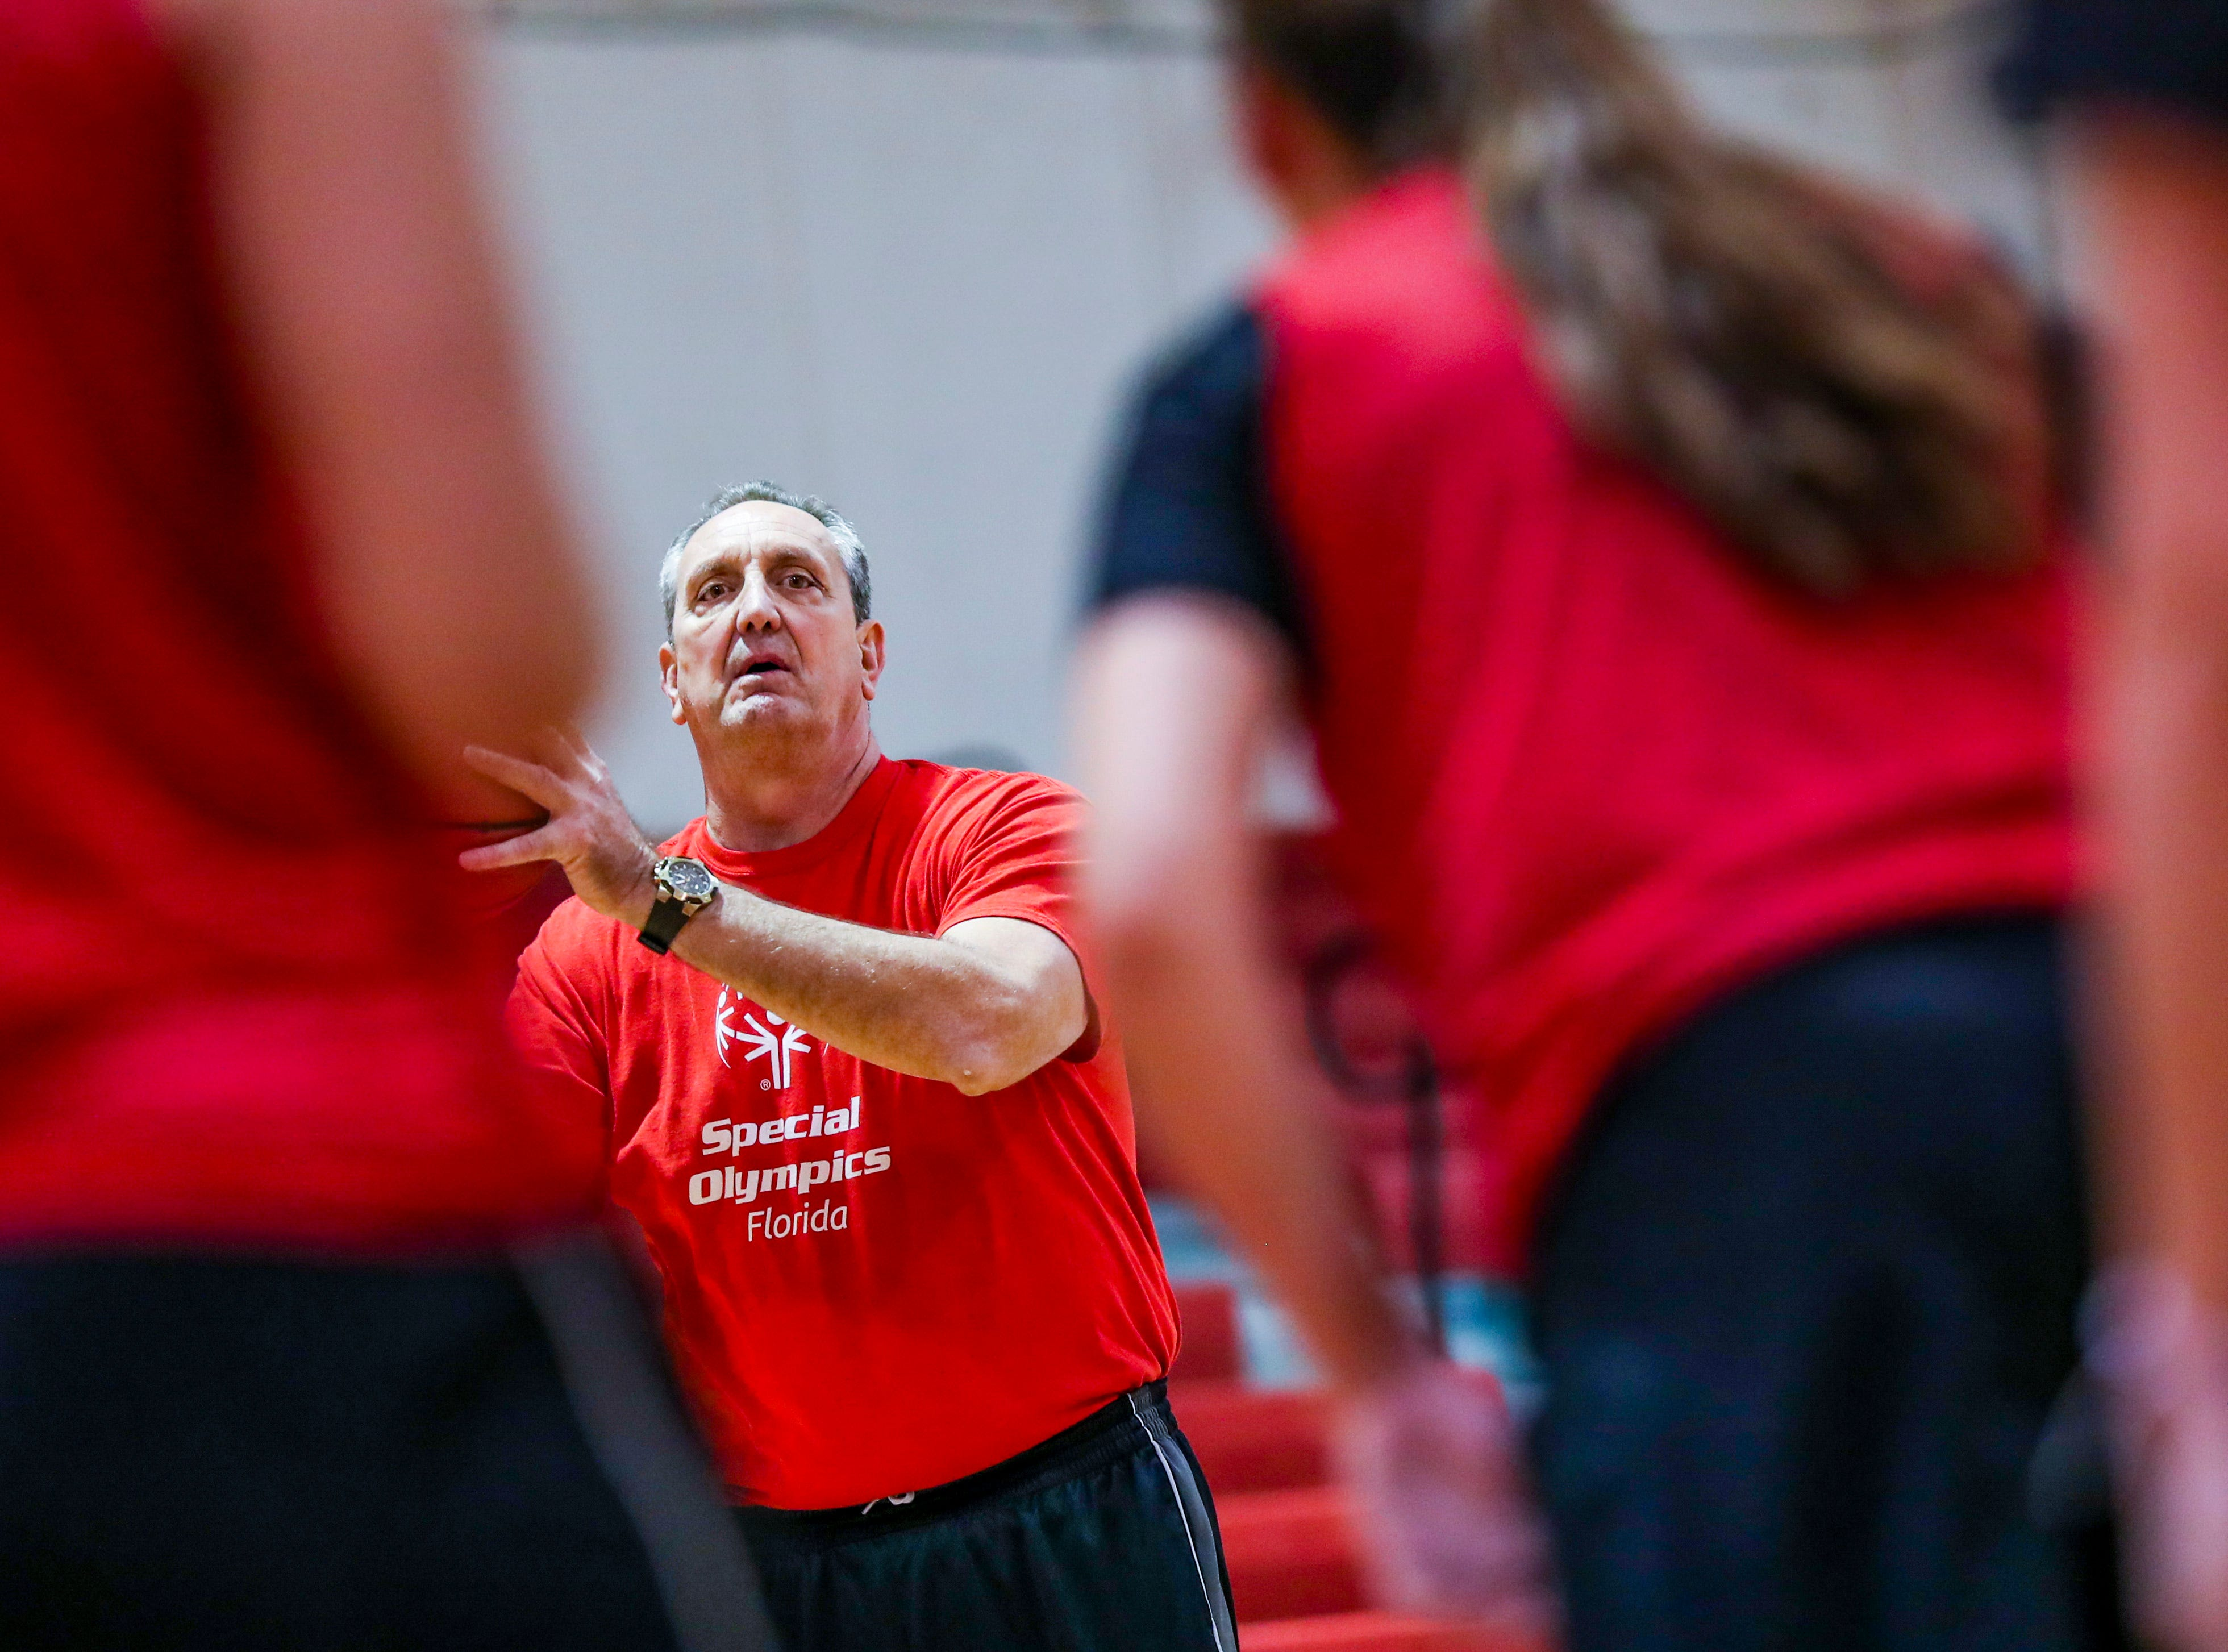 North Fort Myers High School girls basketball assistant coach Brad Branson during practice at the school Thursday. Brad Branson, 60, a 1976 North Fort Myers High graduate who played two years in the NBA and 13 more overseas in Italy and Spain, has returned home to spend time with his aging former Edison coach, Hugh Thimlar, and with his kids in grades 11 and 9. He is teaching a philanthropy course at North and helping coach the girls basketball team.